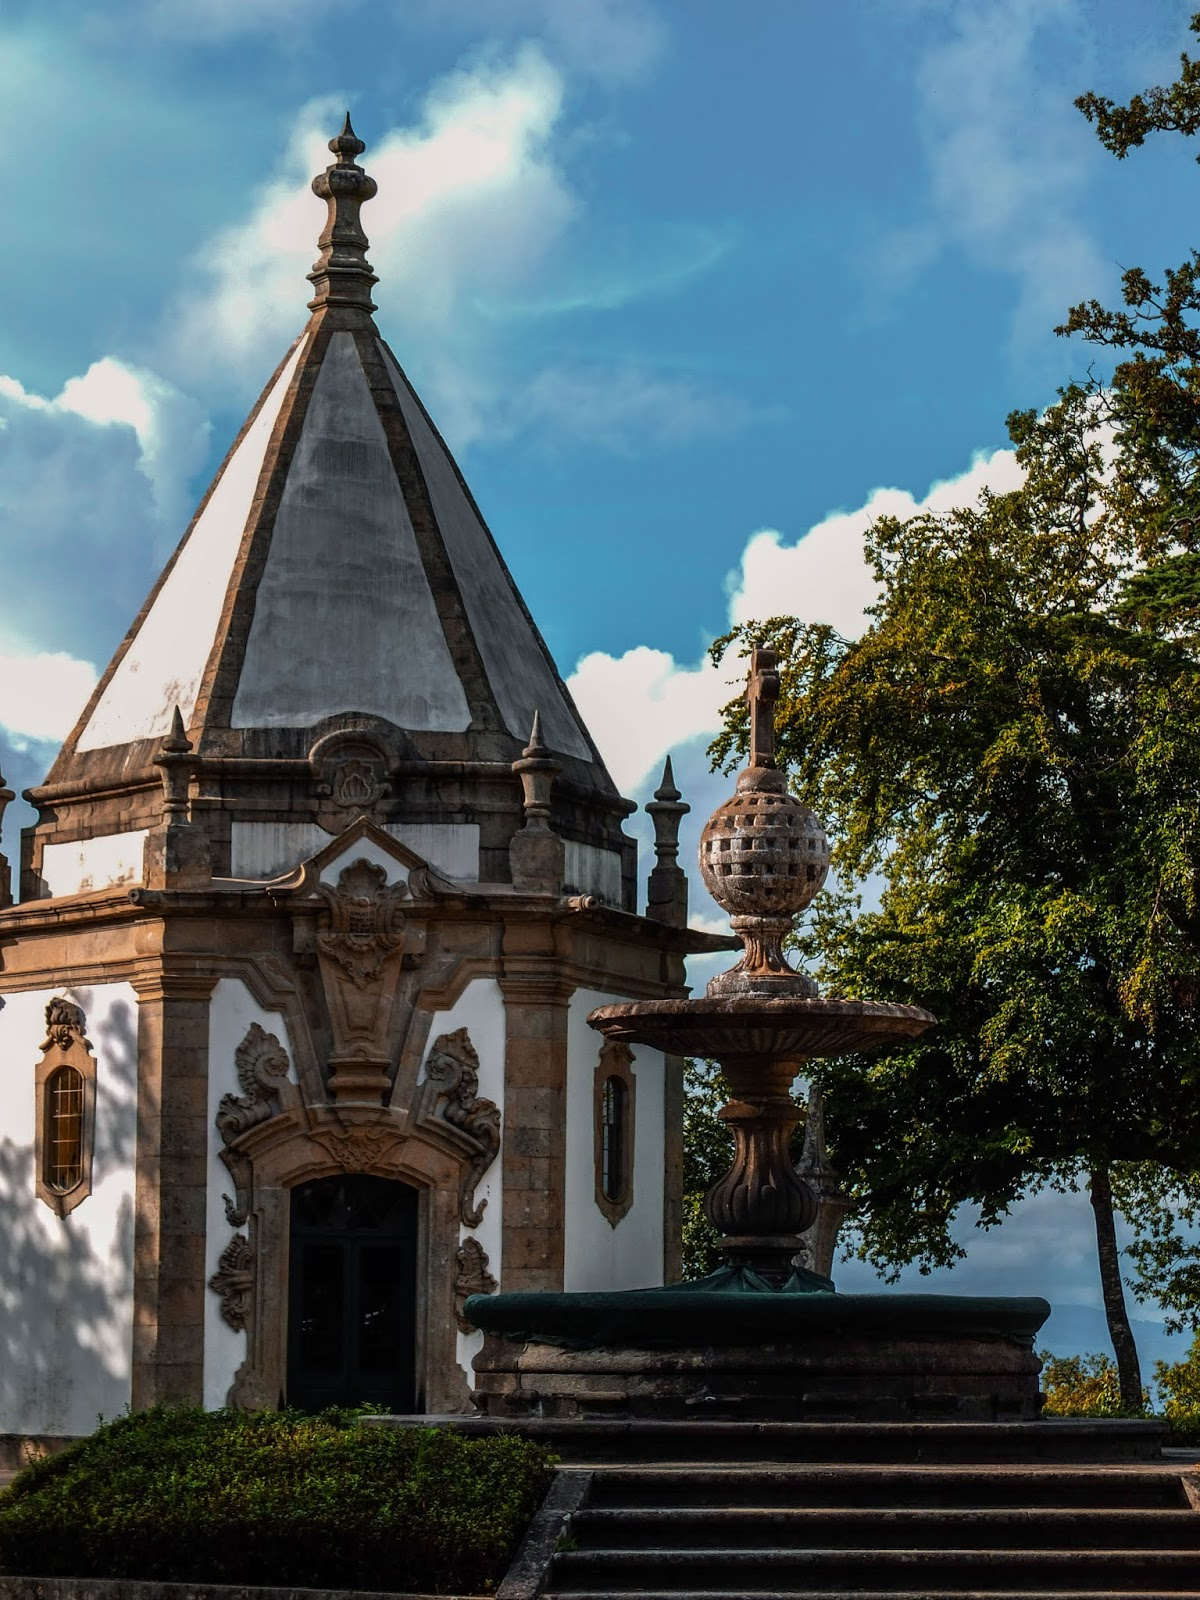 A chapel from Bom Jesus do Monte in Braga, Portugal pictured with a water fountain.